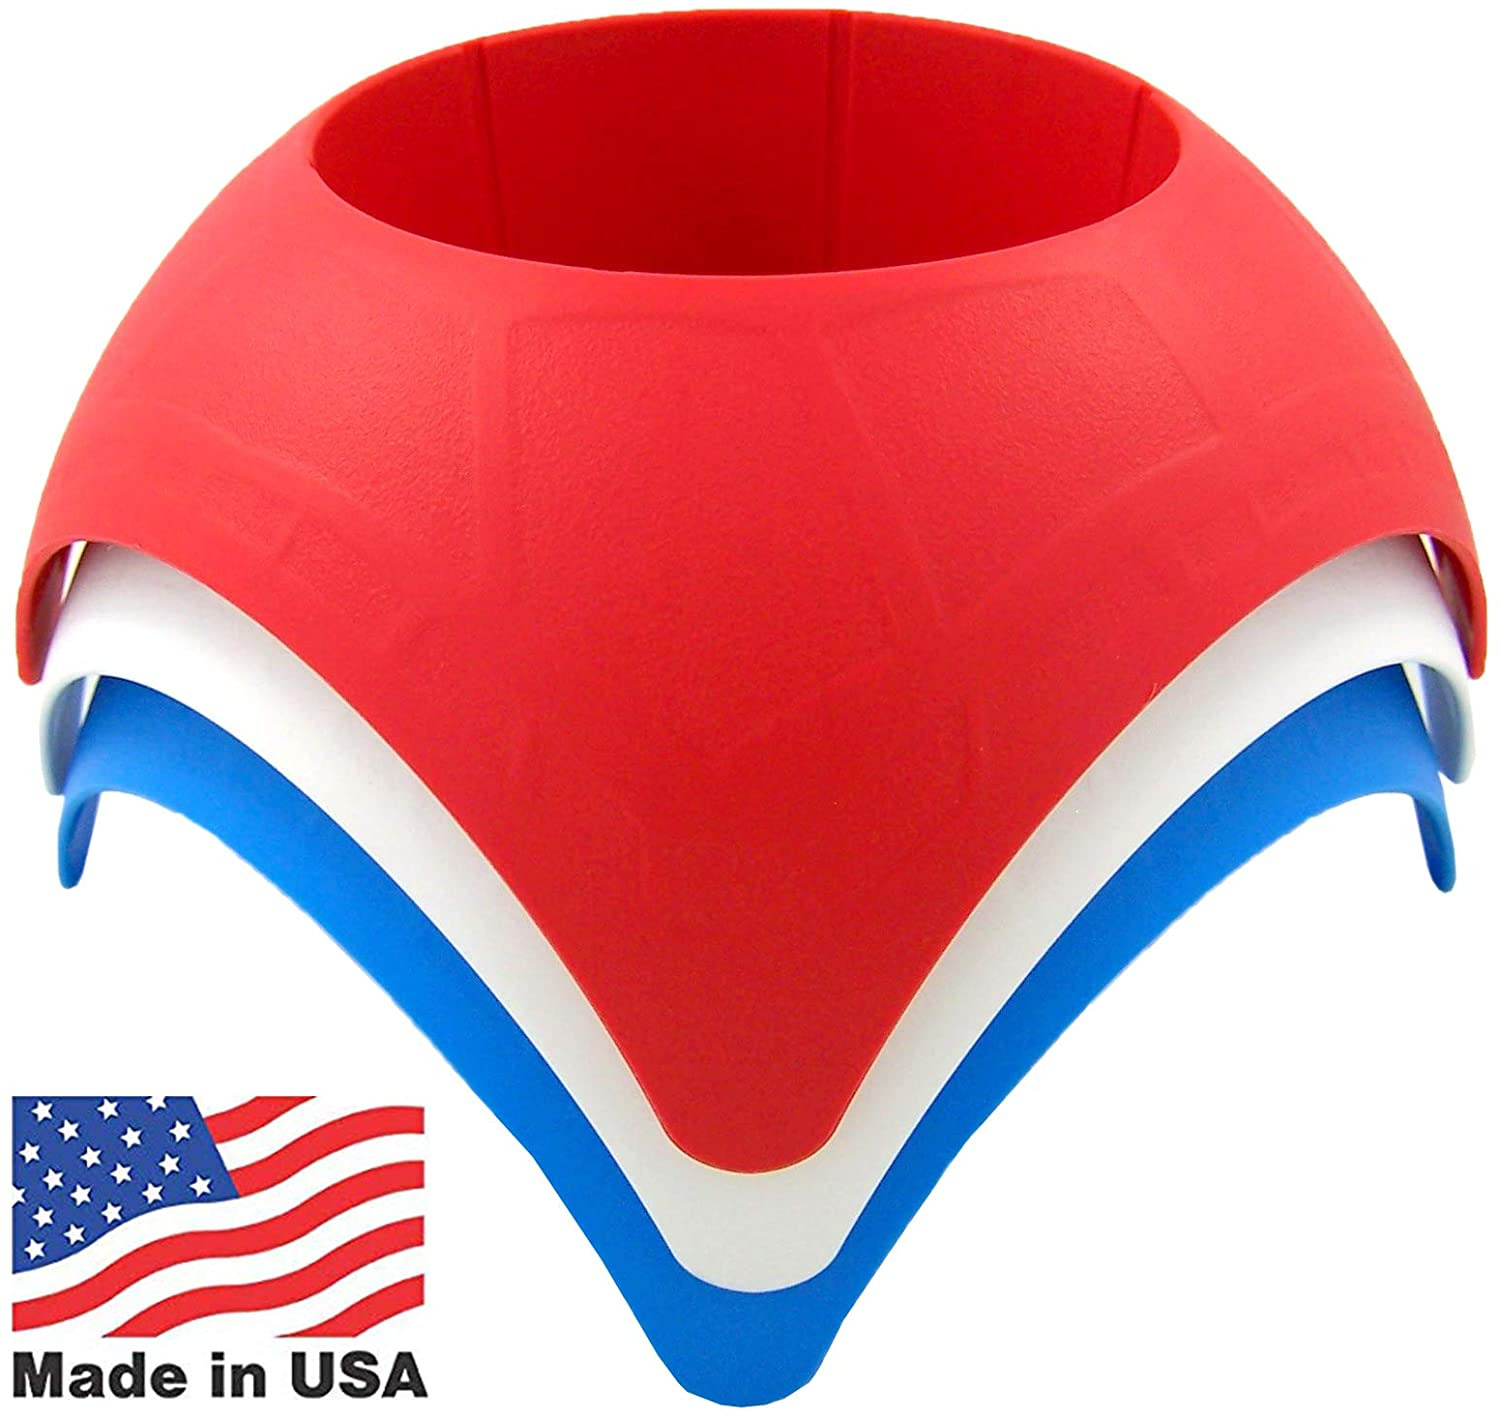 Red, White and Blue Fourth of July Beach Accessory Turtleback Sand Coaster Drink Cup Holder, Pack of 3